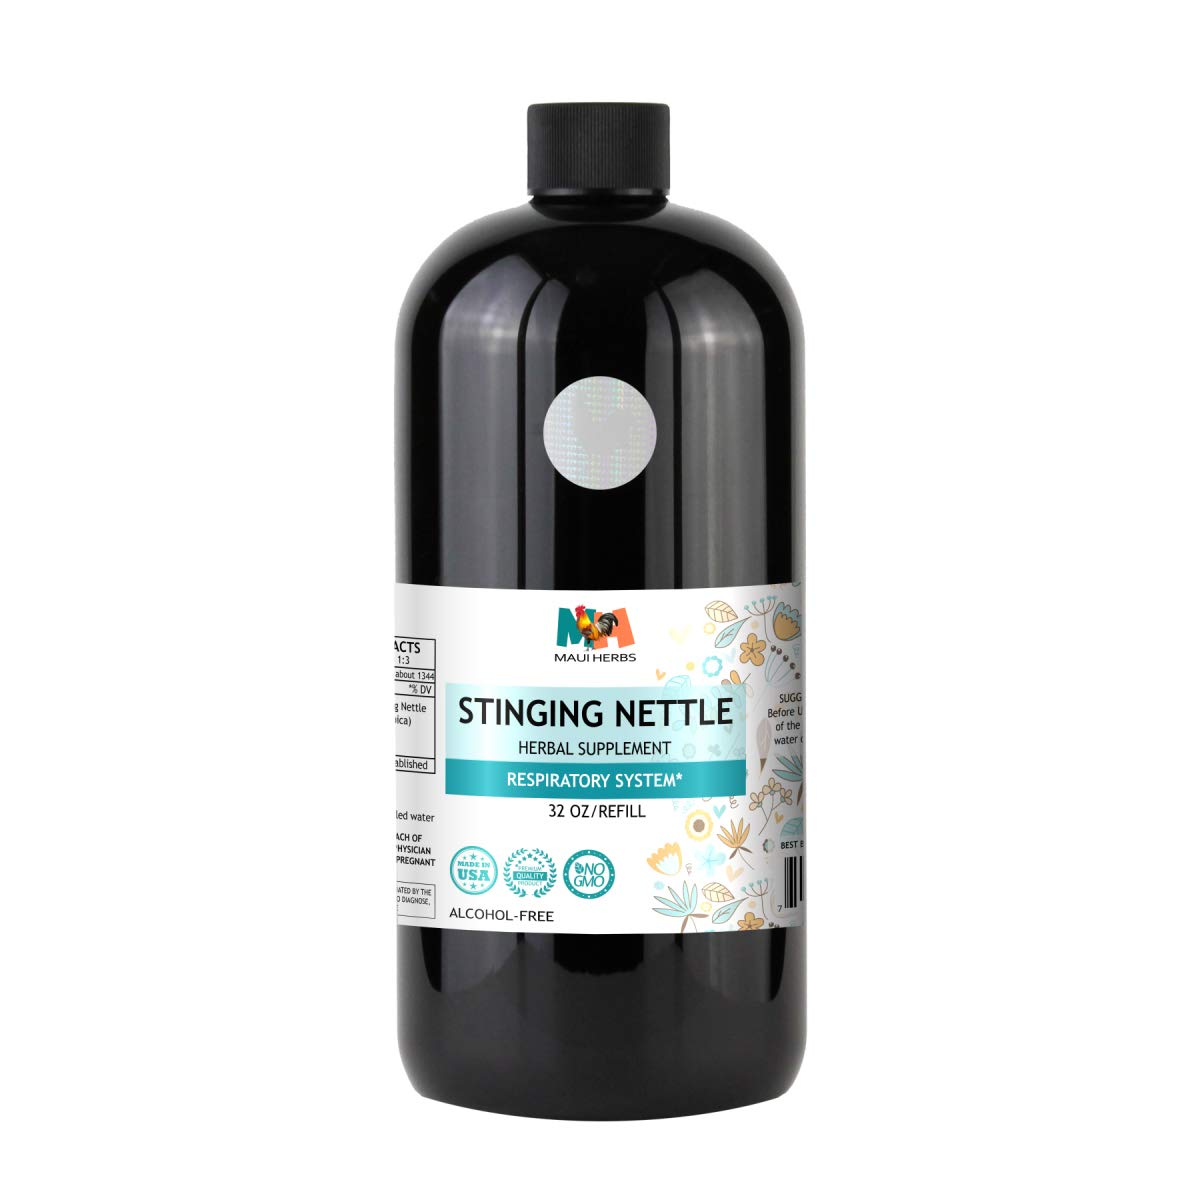 Stinging Nettle Tincture Alcohol-Free Liquid Extract, Organic Stinging Nettle Leaf and Root (Urtica Dioica) (32 FL OZ)